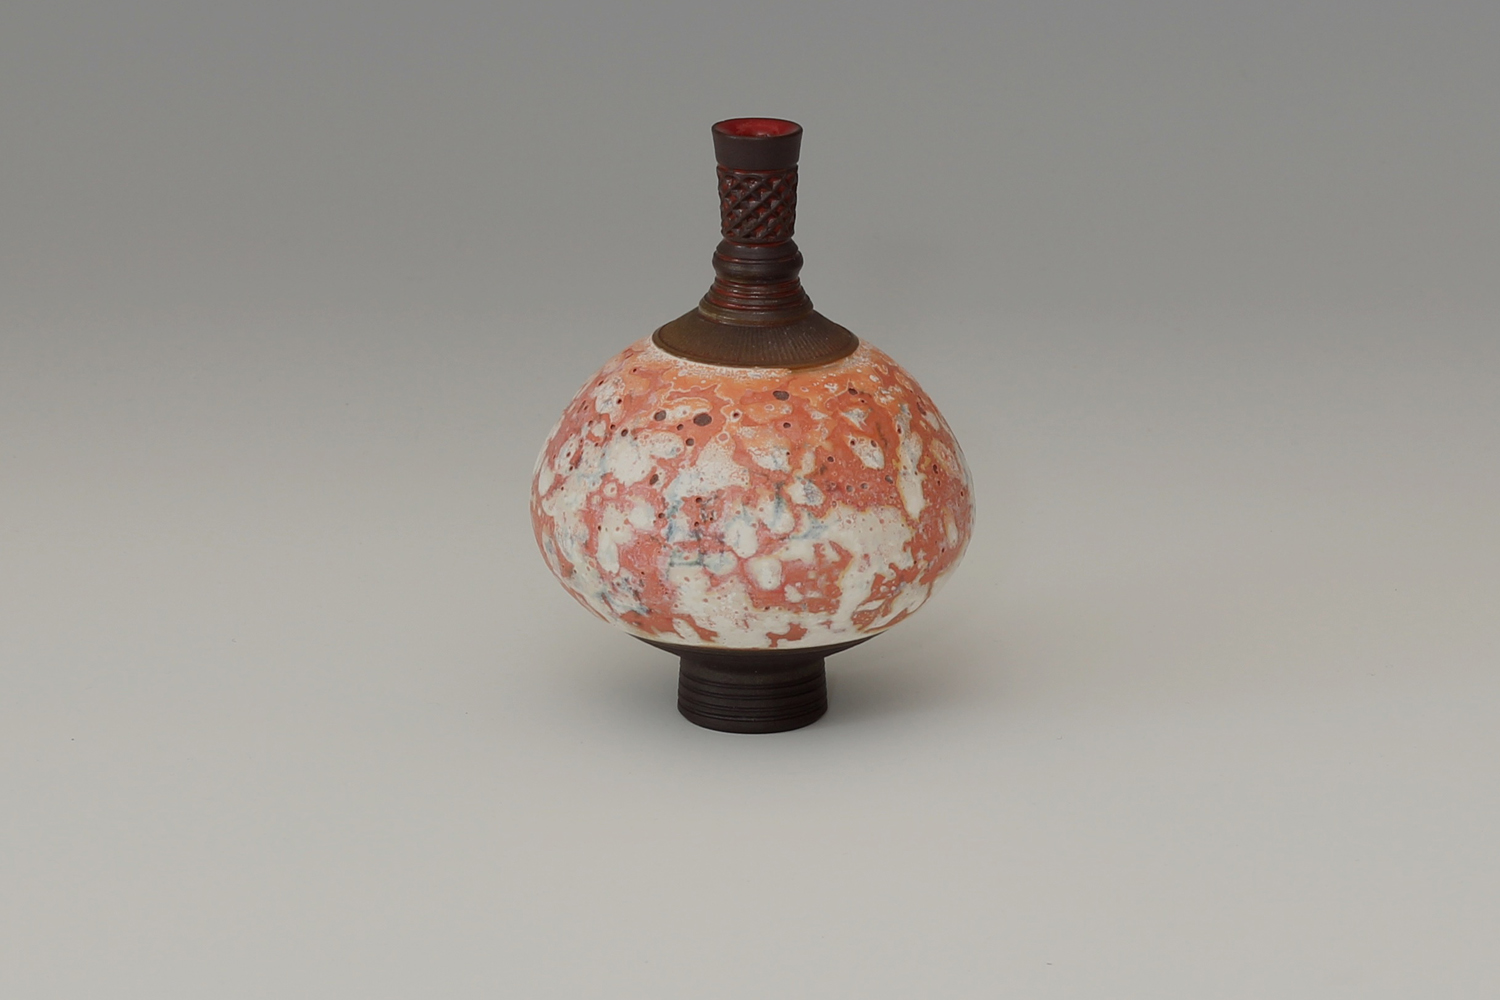 Geoffrey Swindell Ceramic Miniature Vessel 017